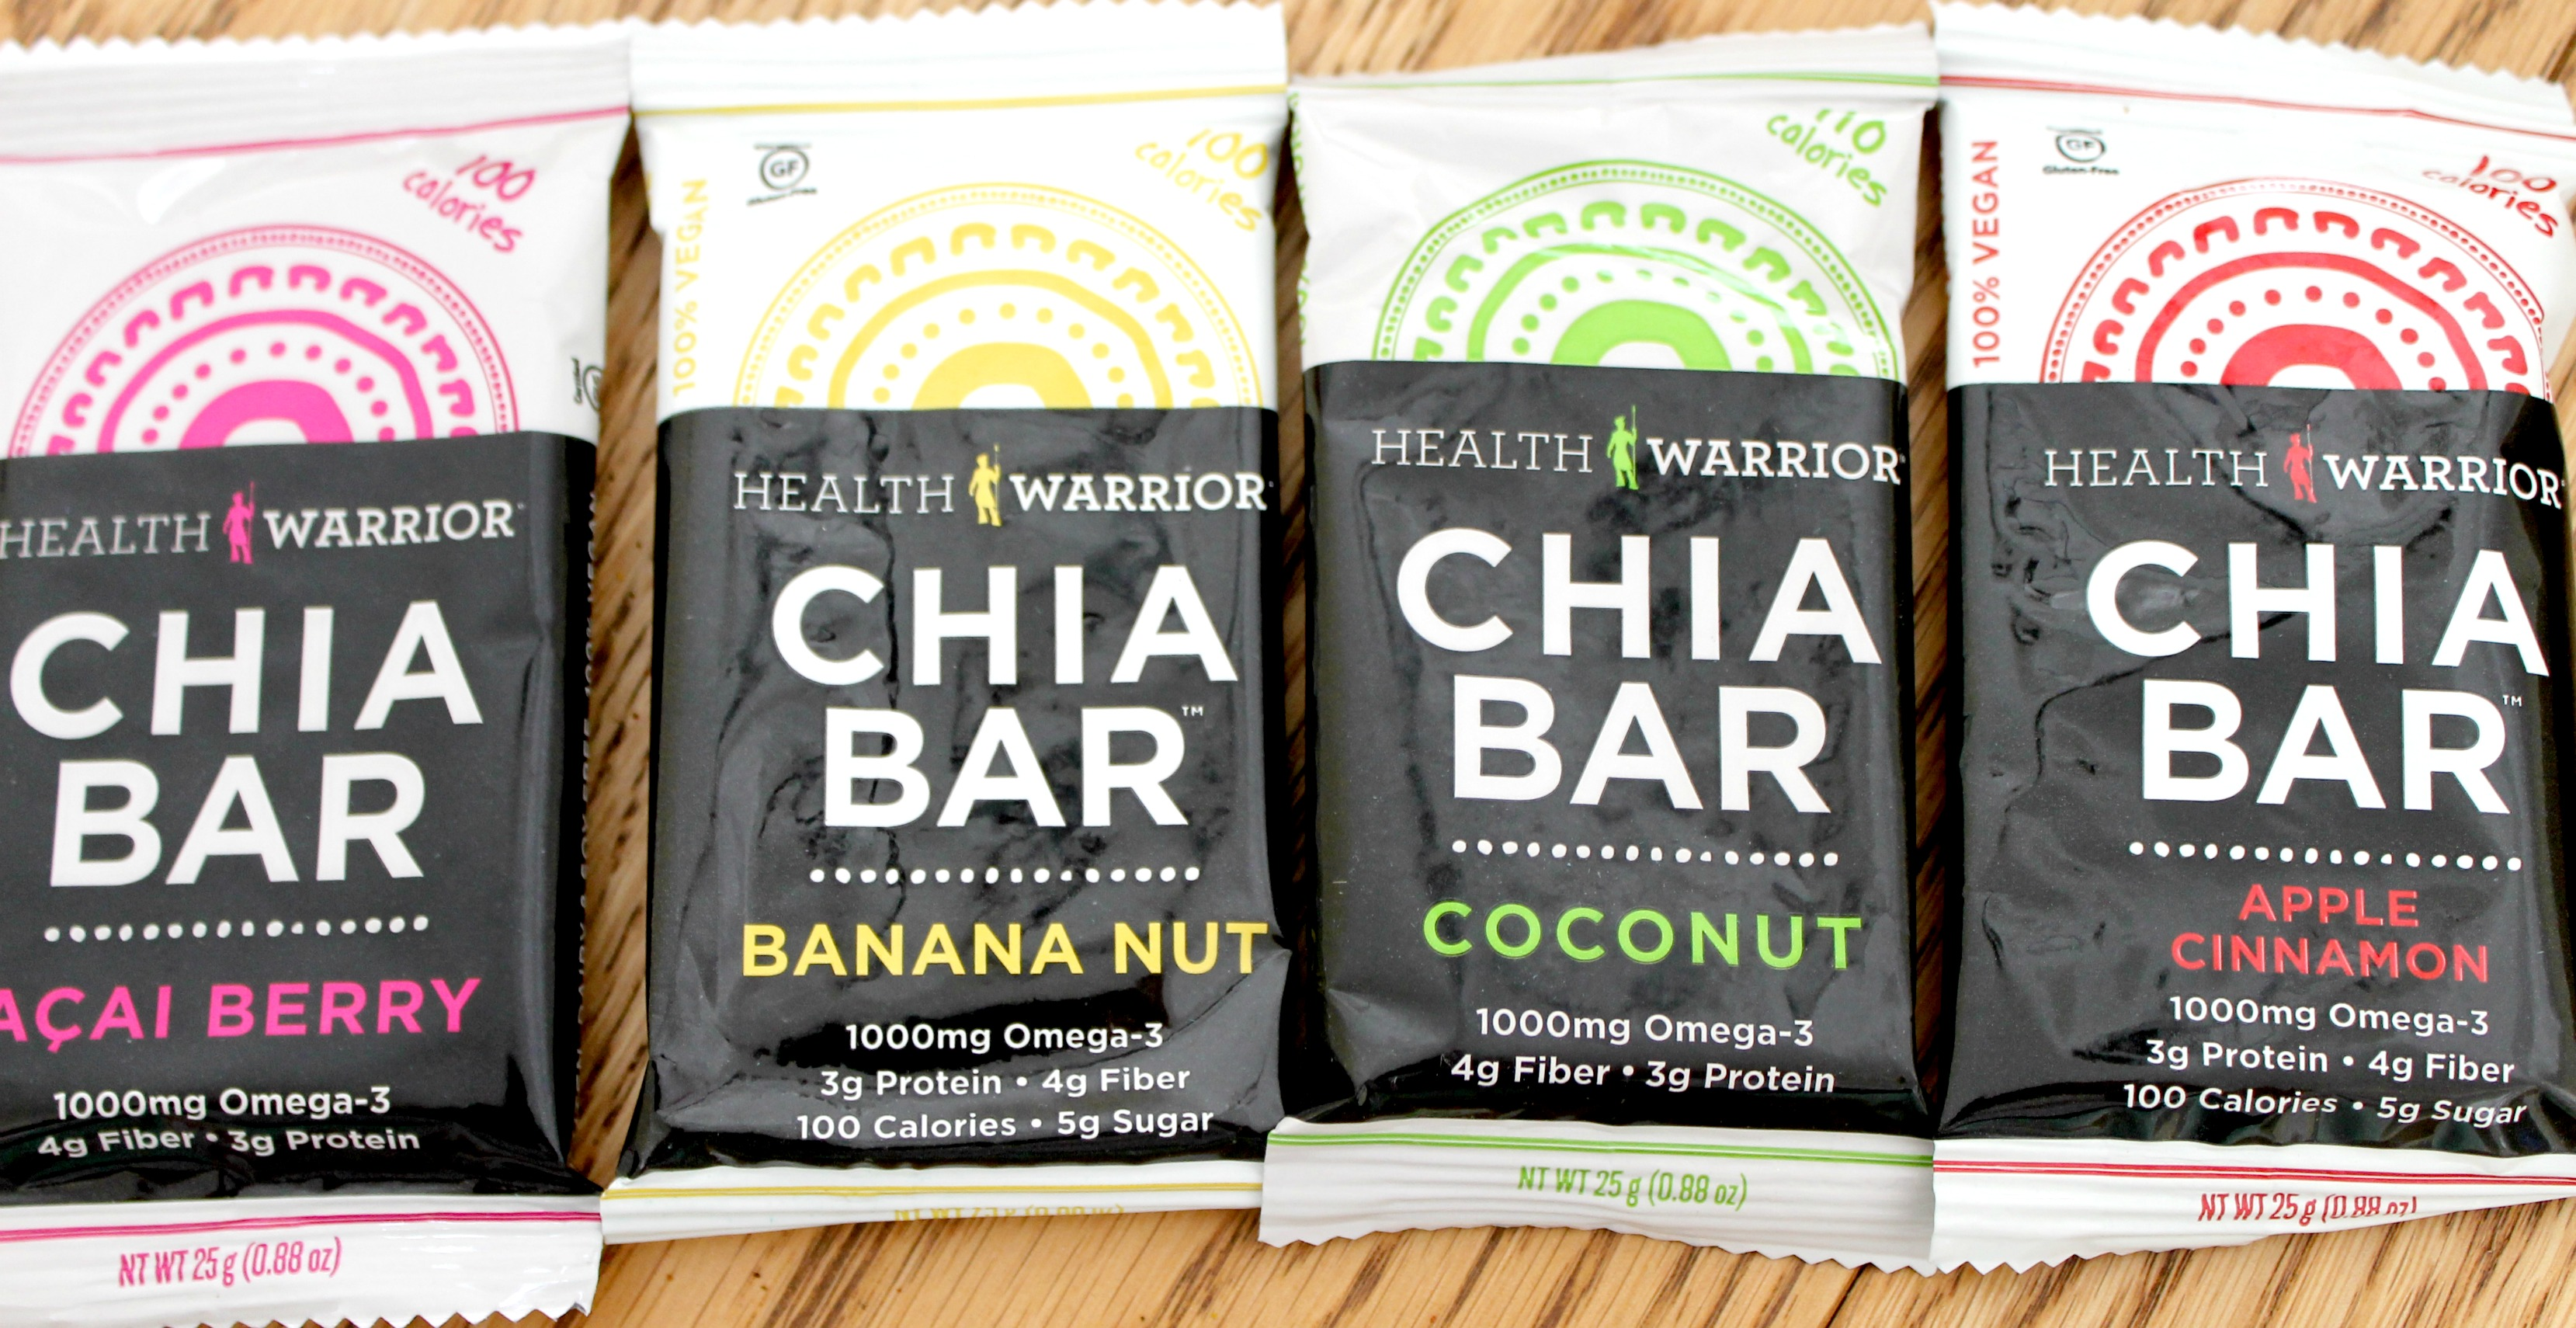 health warrior chia bar lineup